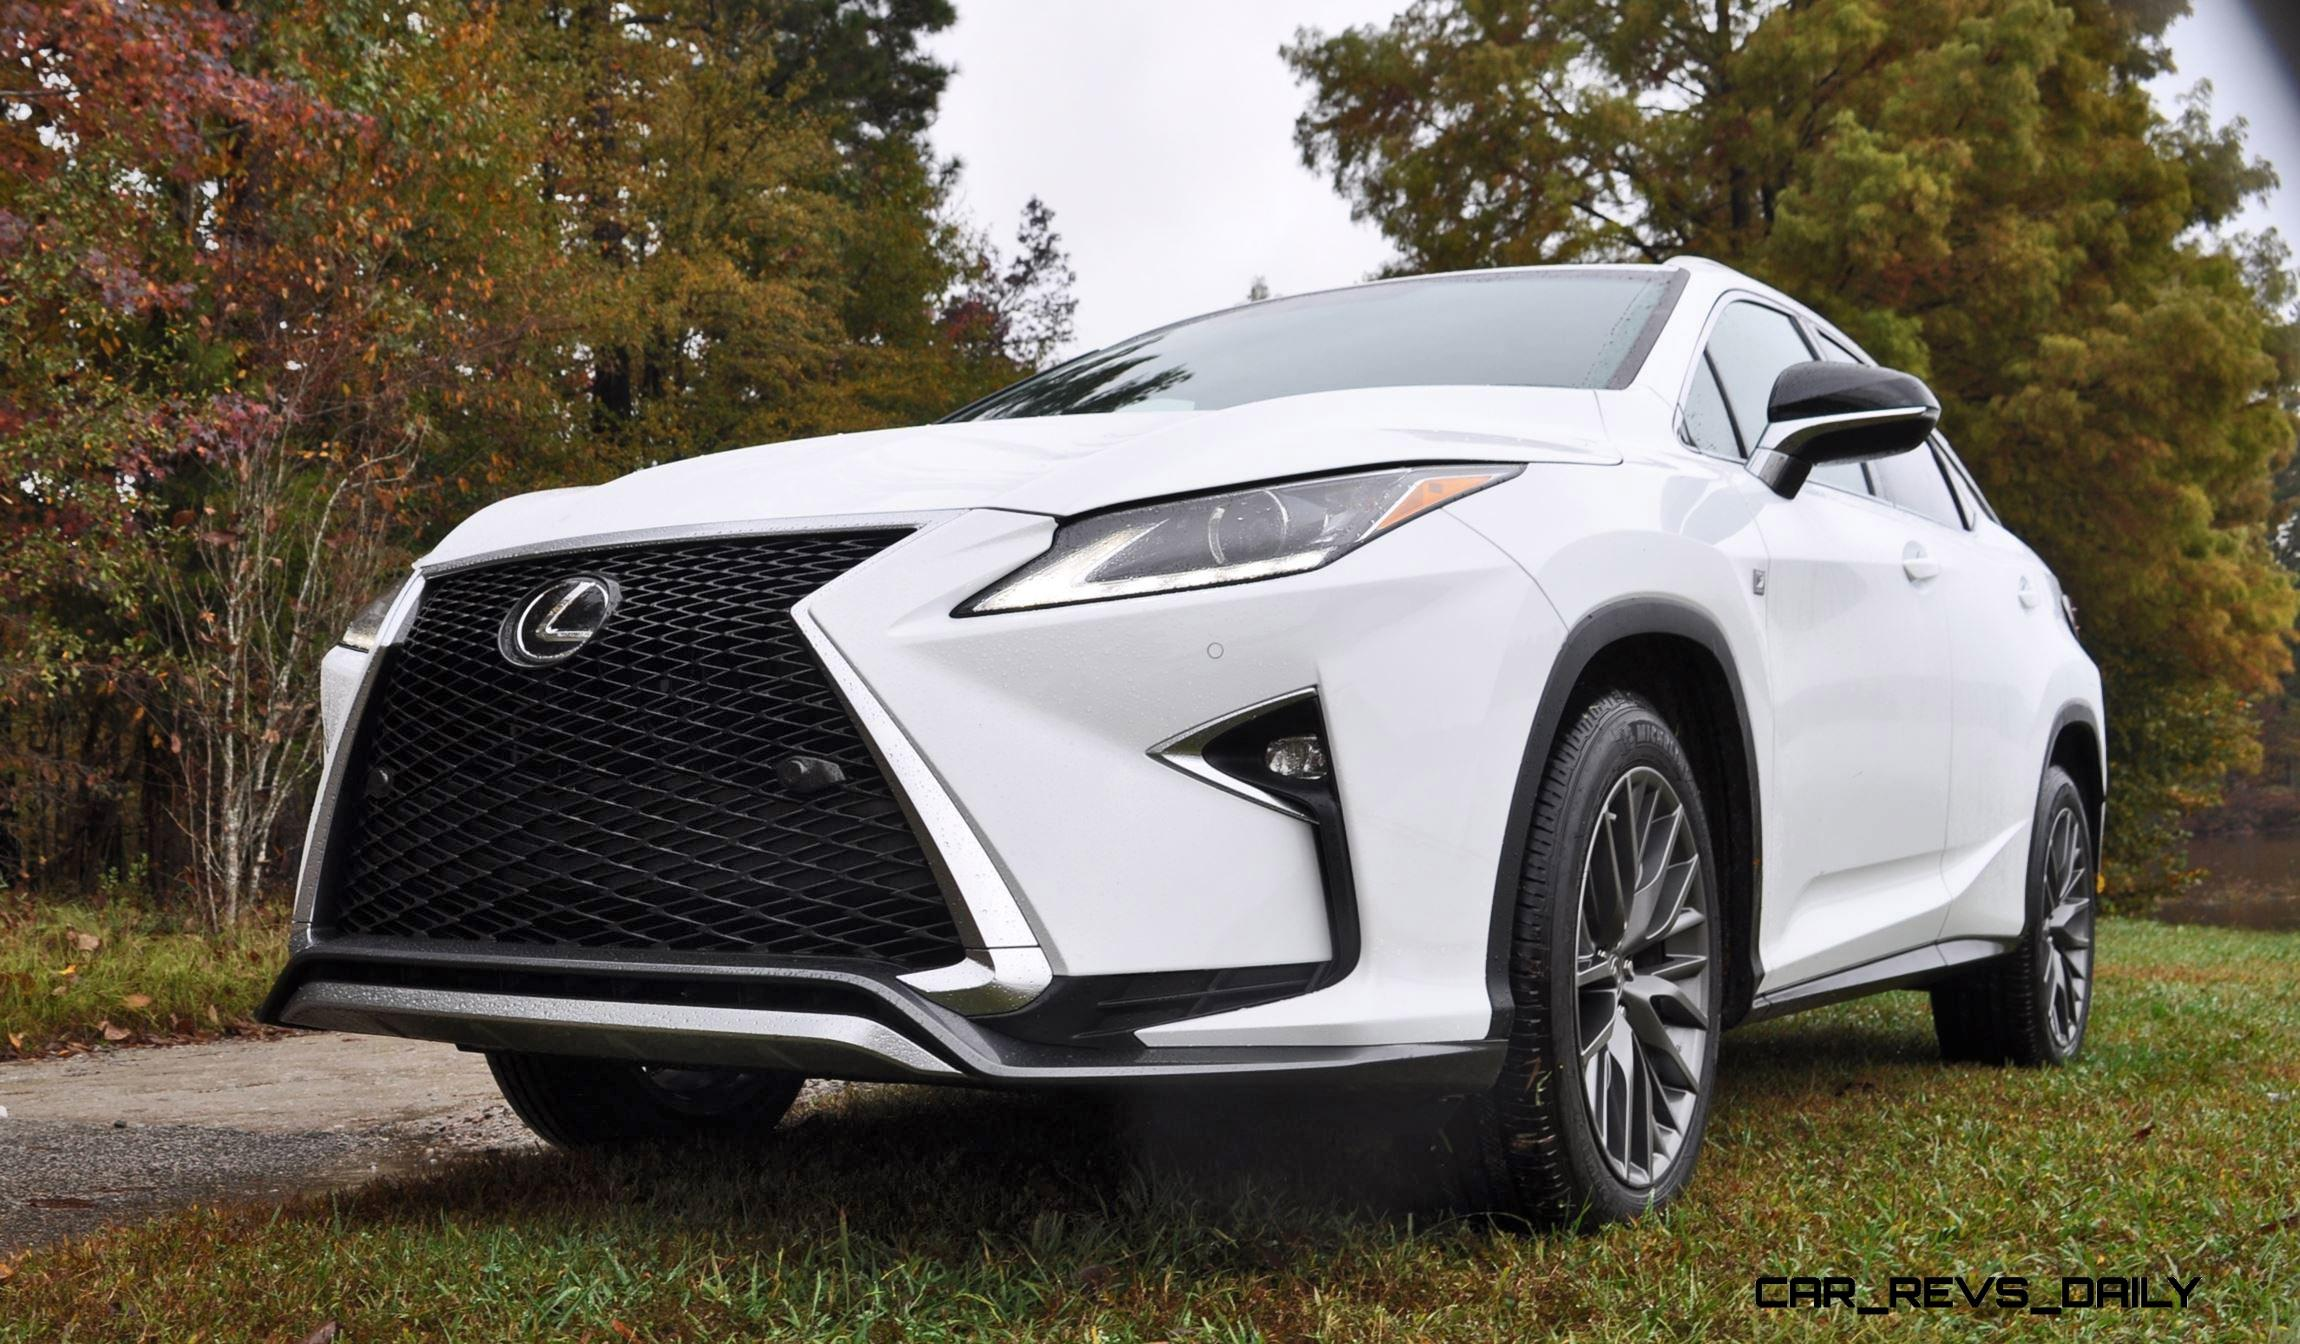 2016 lexus rx reviews roundup 150 all new rx350 f sport photos in ultra white car revs. Black Bedroom Furniture Sets. Home Design Ideas